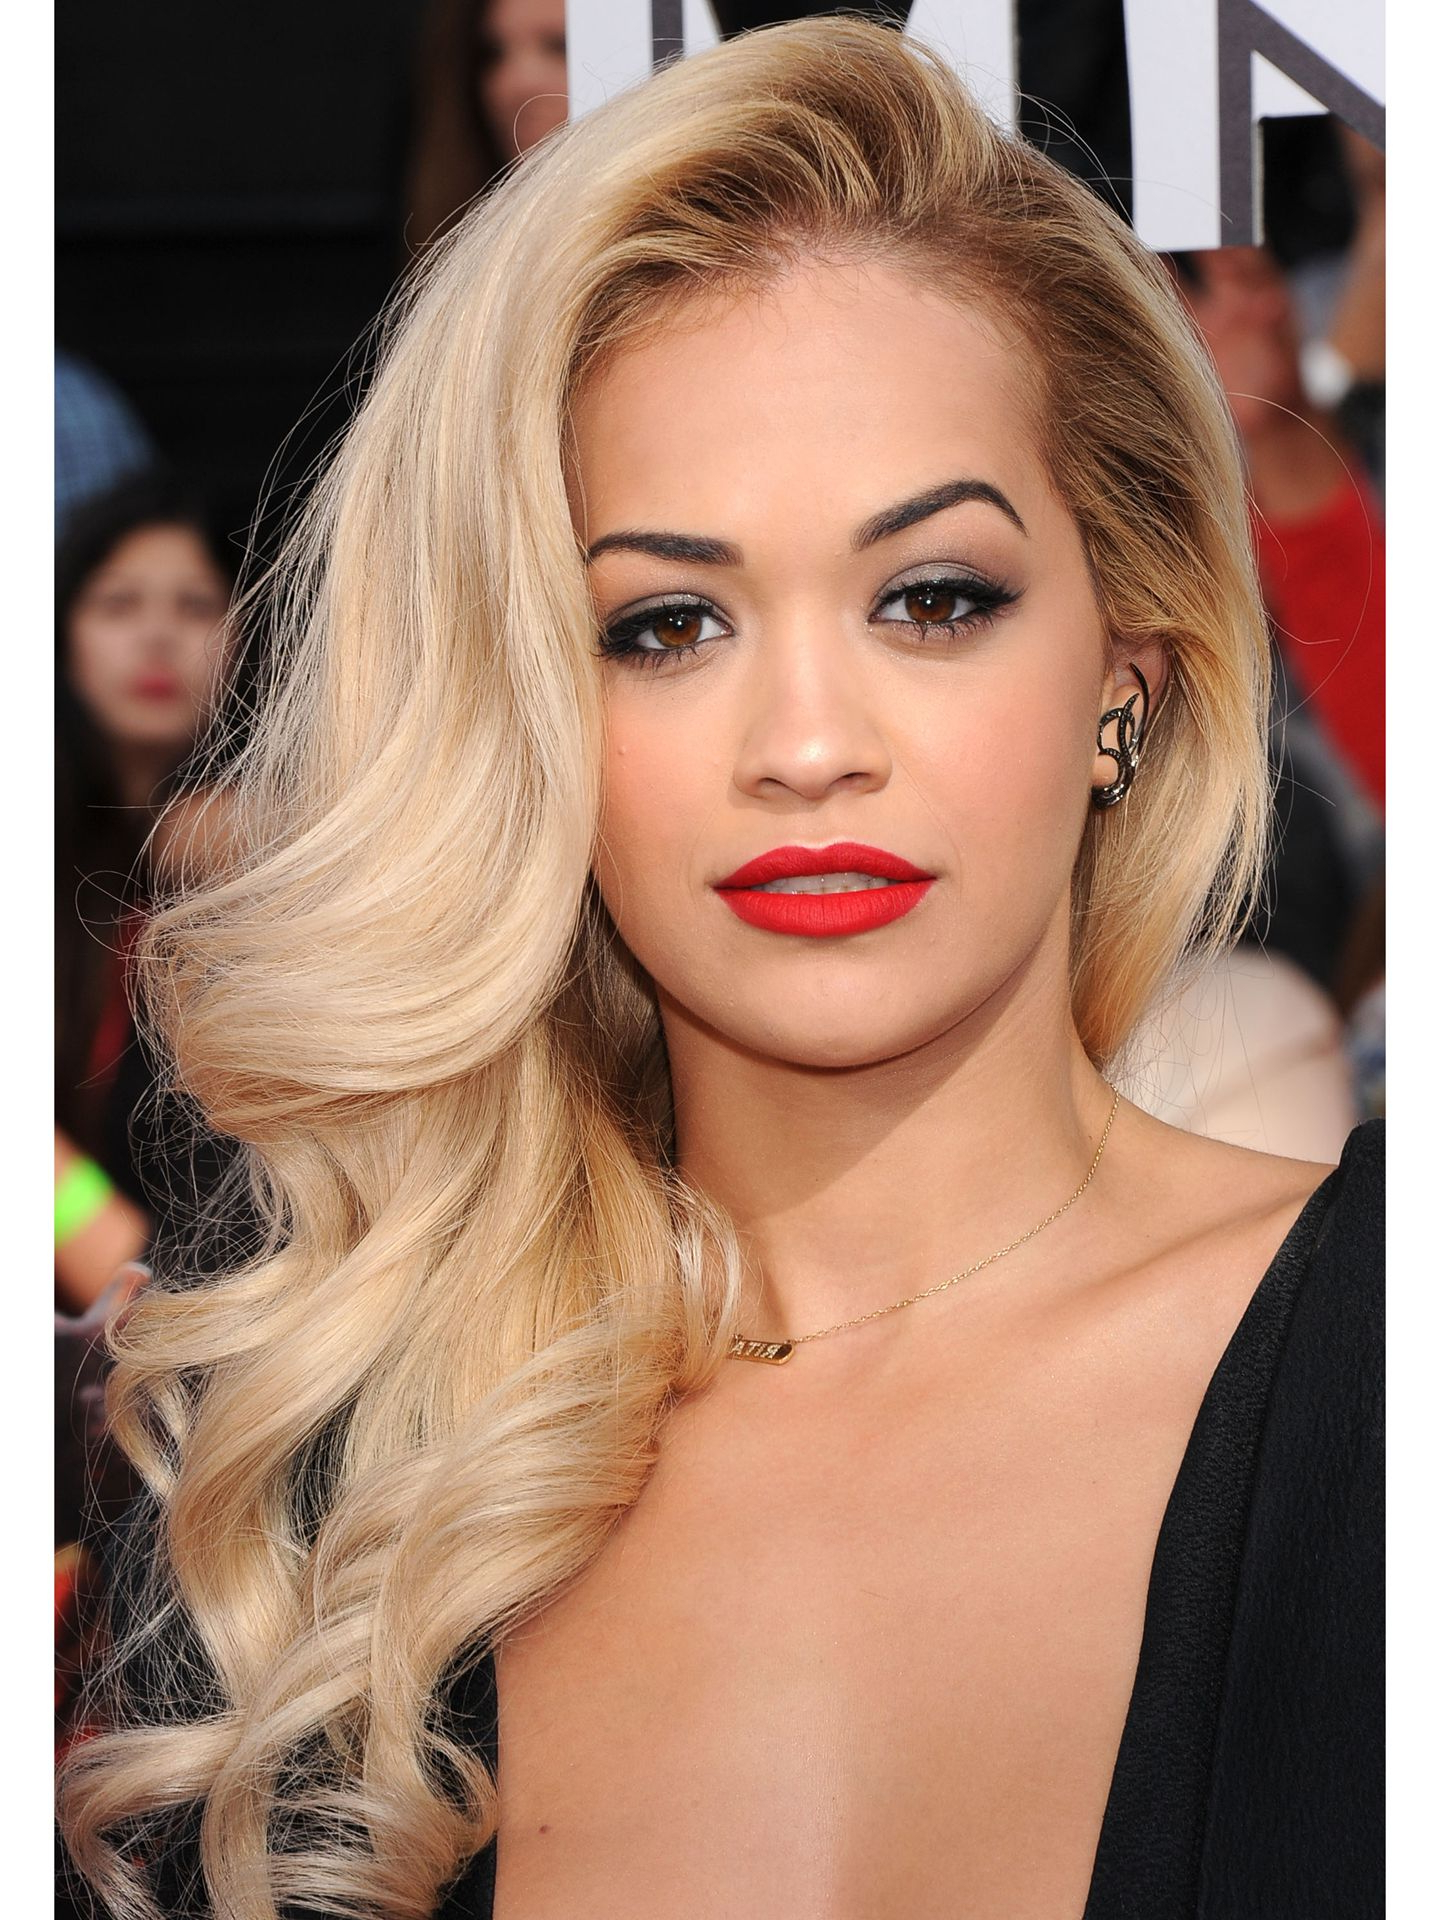 11 Side Swept Hairstyles – Celebrity Side Hairstyle Inspiration Pertaining To Most Up To Date Rita Ora Medium Hairstyles (View 1 of 20)